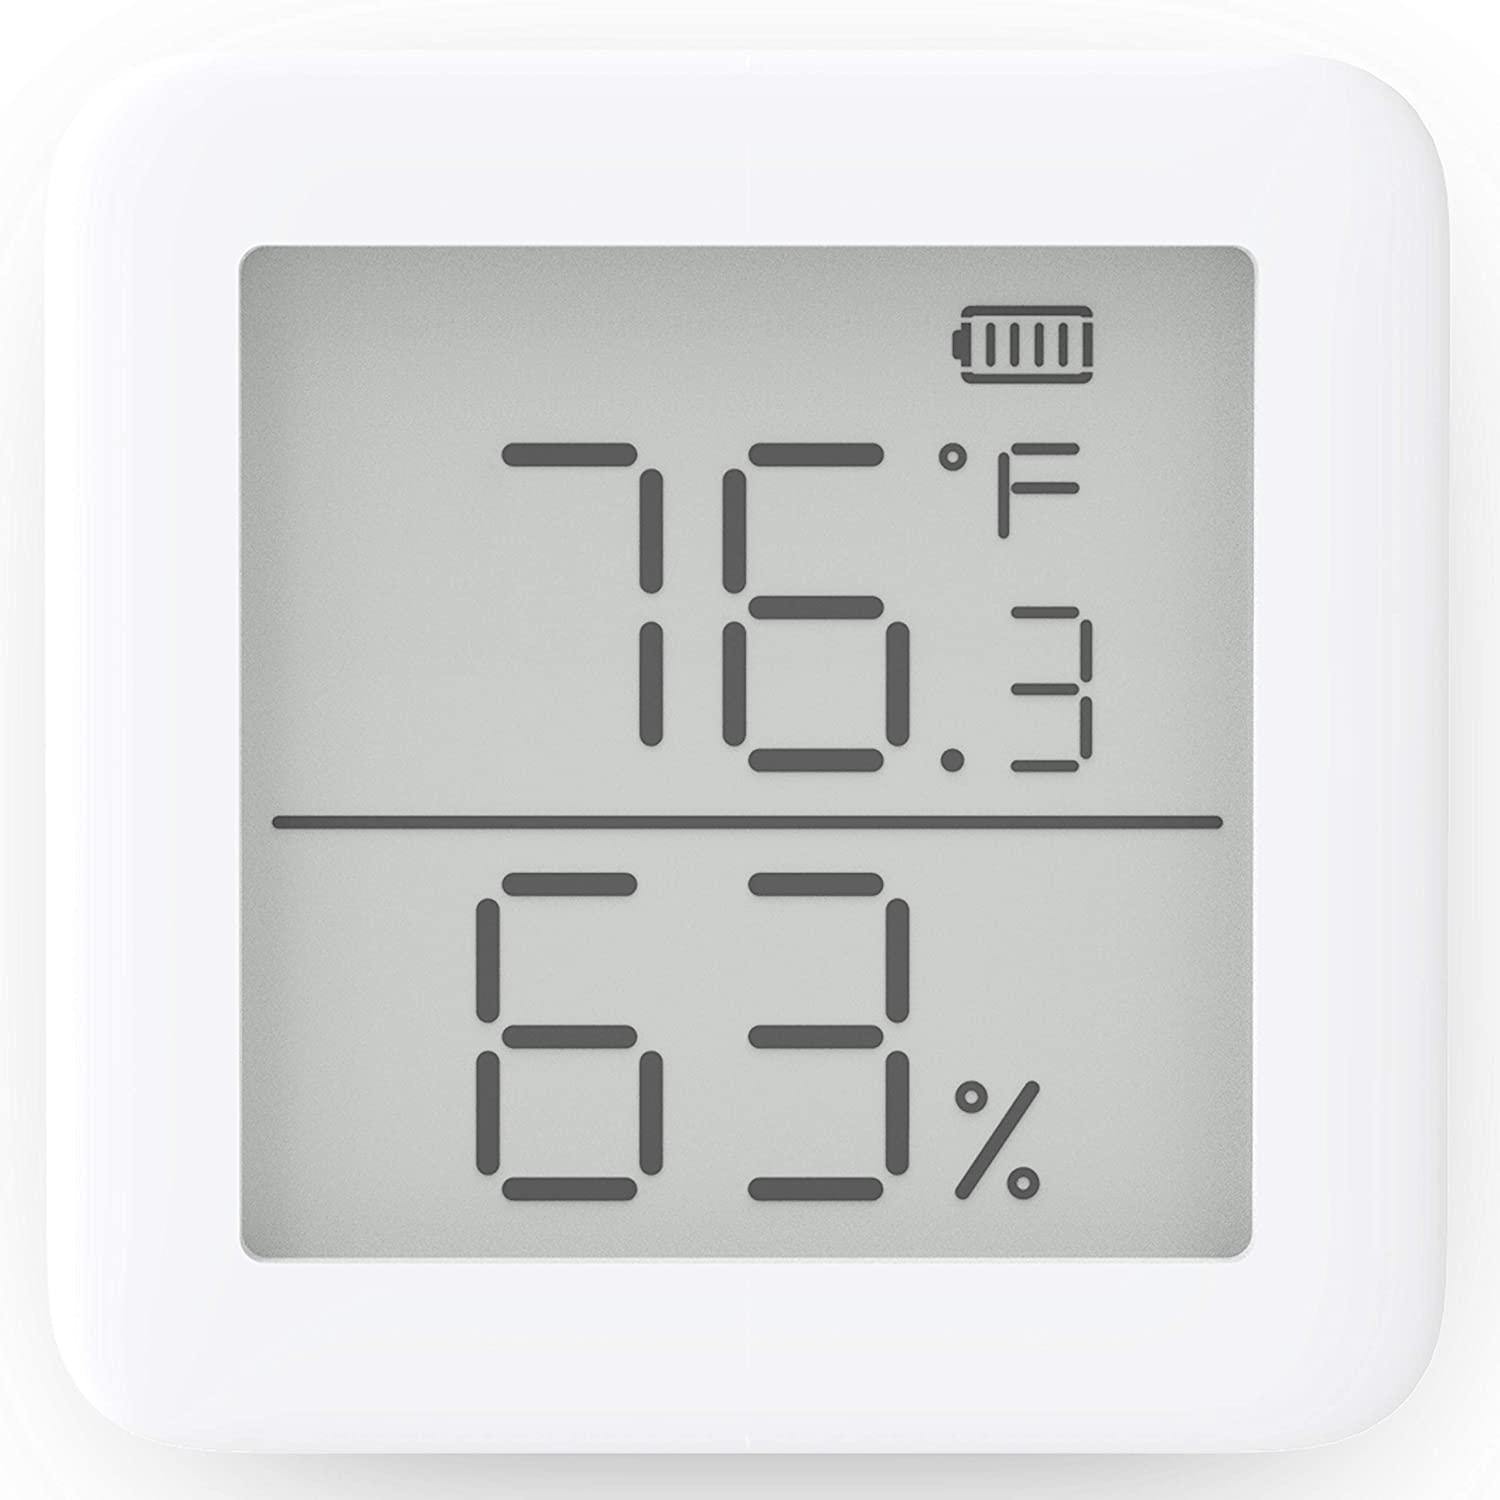 SwitchBot Thermom/ètre Hygrom/ètre Alexa iPhone Android Wireless Temperature Humidity Sensor with Alerts